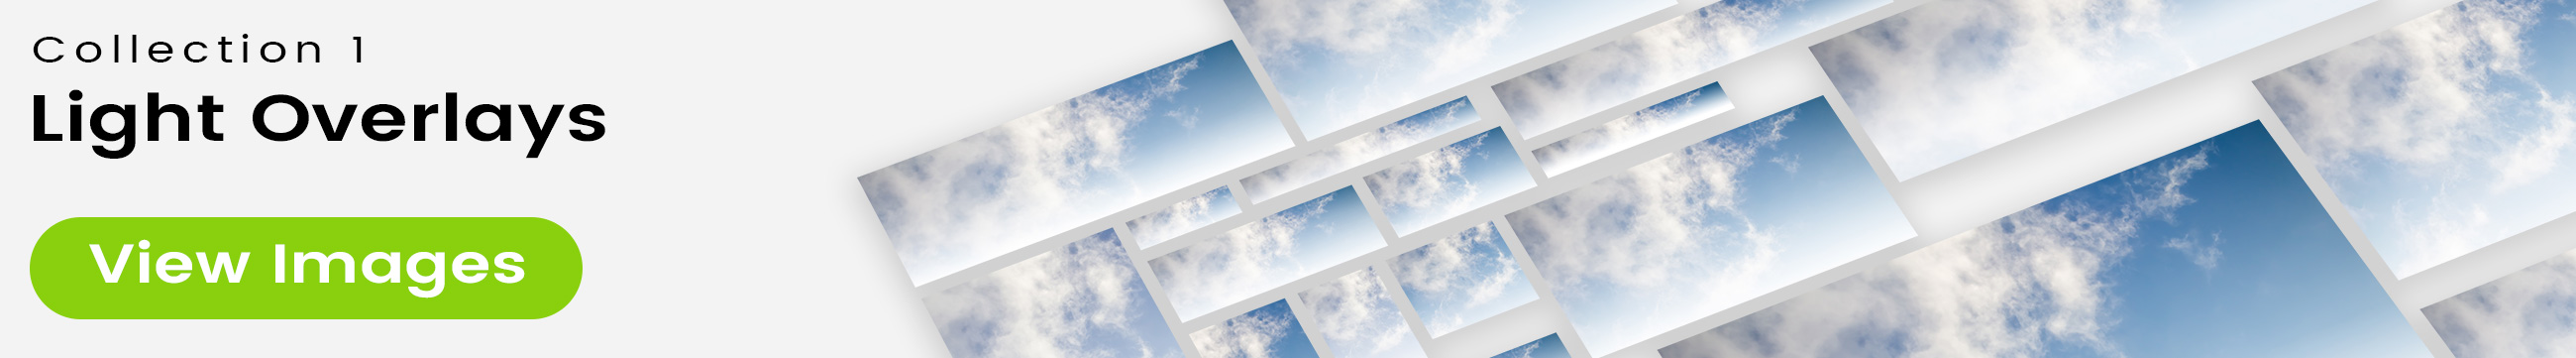 See 25 bonus images included with clouds stock image 9468. Collection 1 of 4 features a light overlay design.